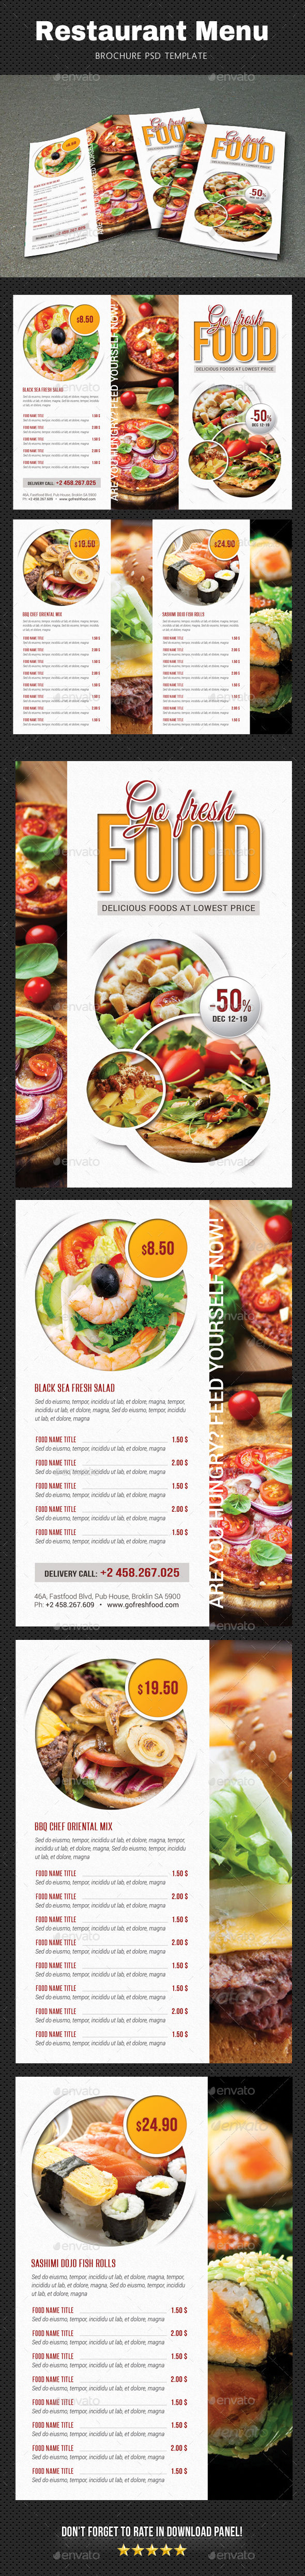 Restaurant Menu Brochure - Food Menus Print Templates